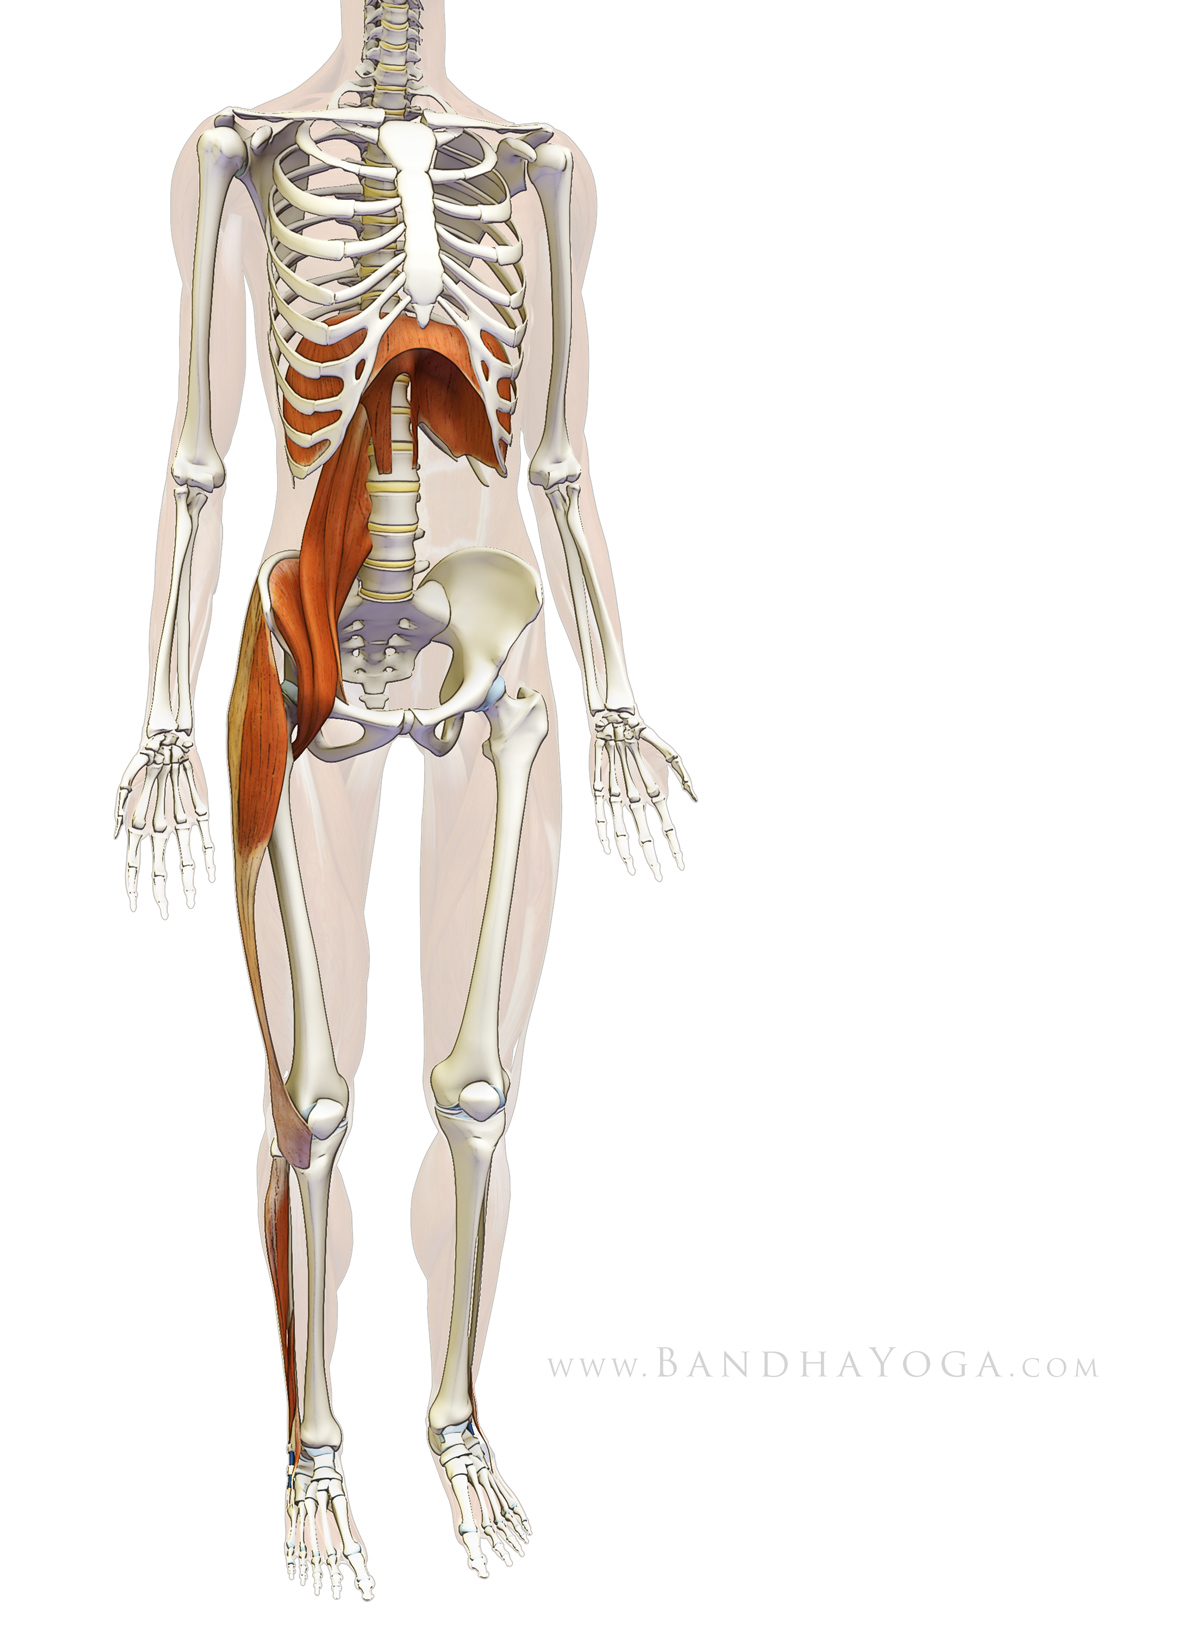 The Daily Bandha: Sankalpa, Visualization and Yoga: The Diaphragm ...